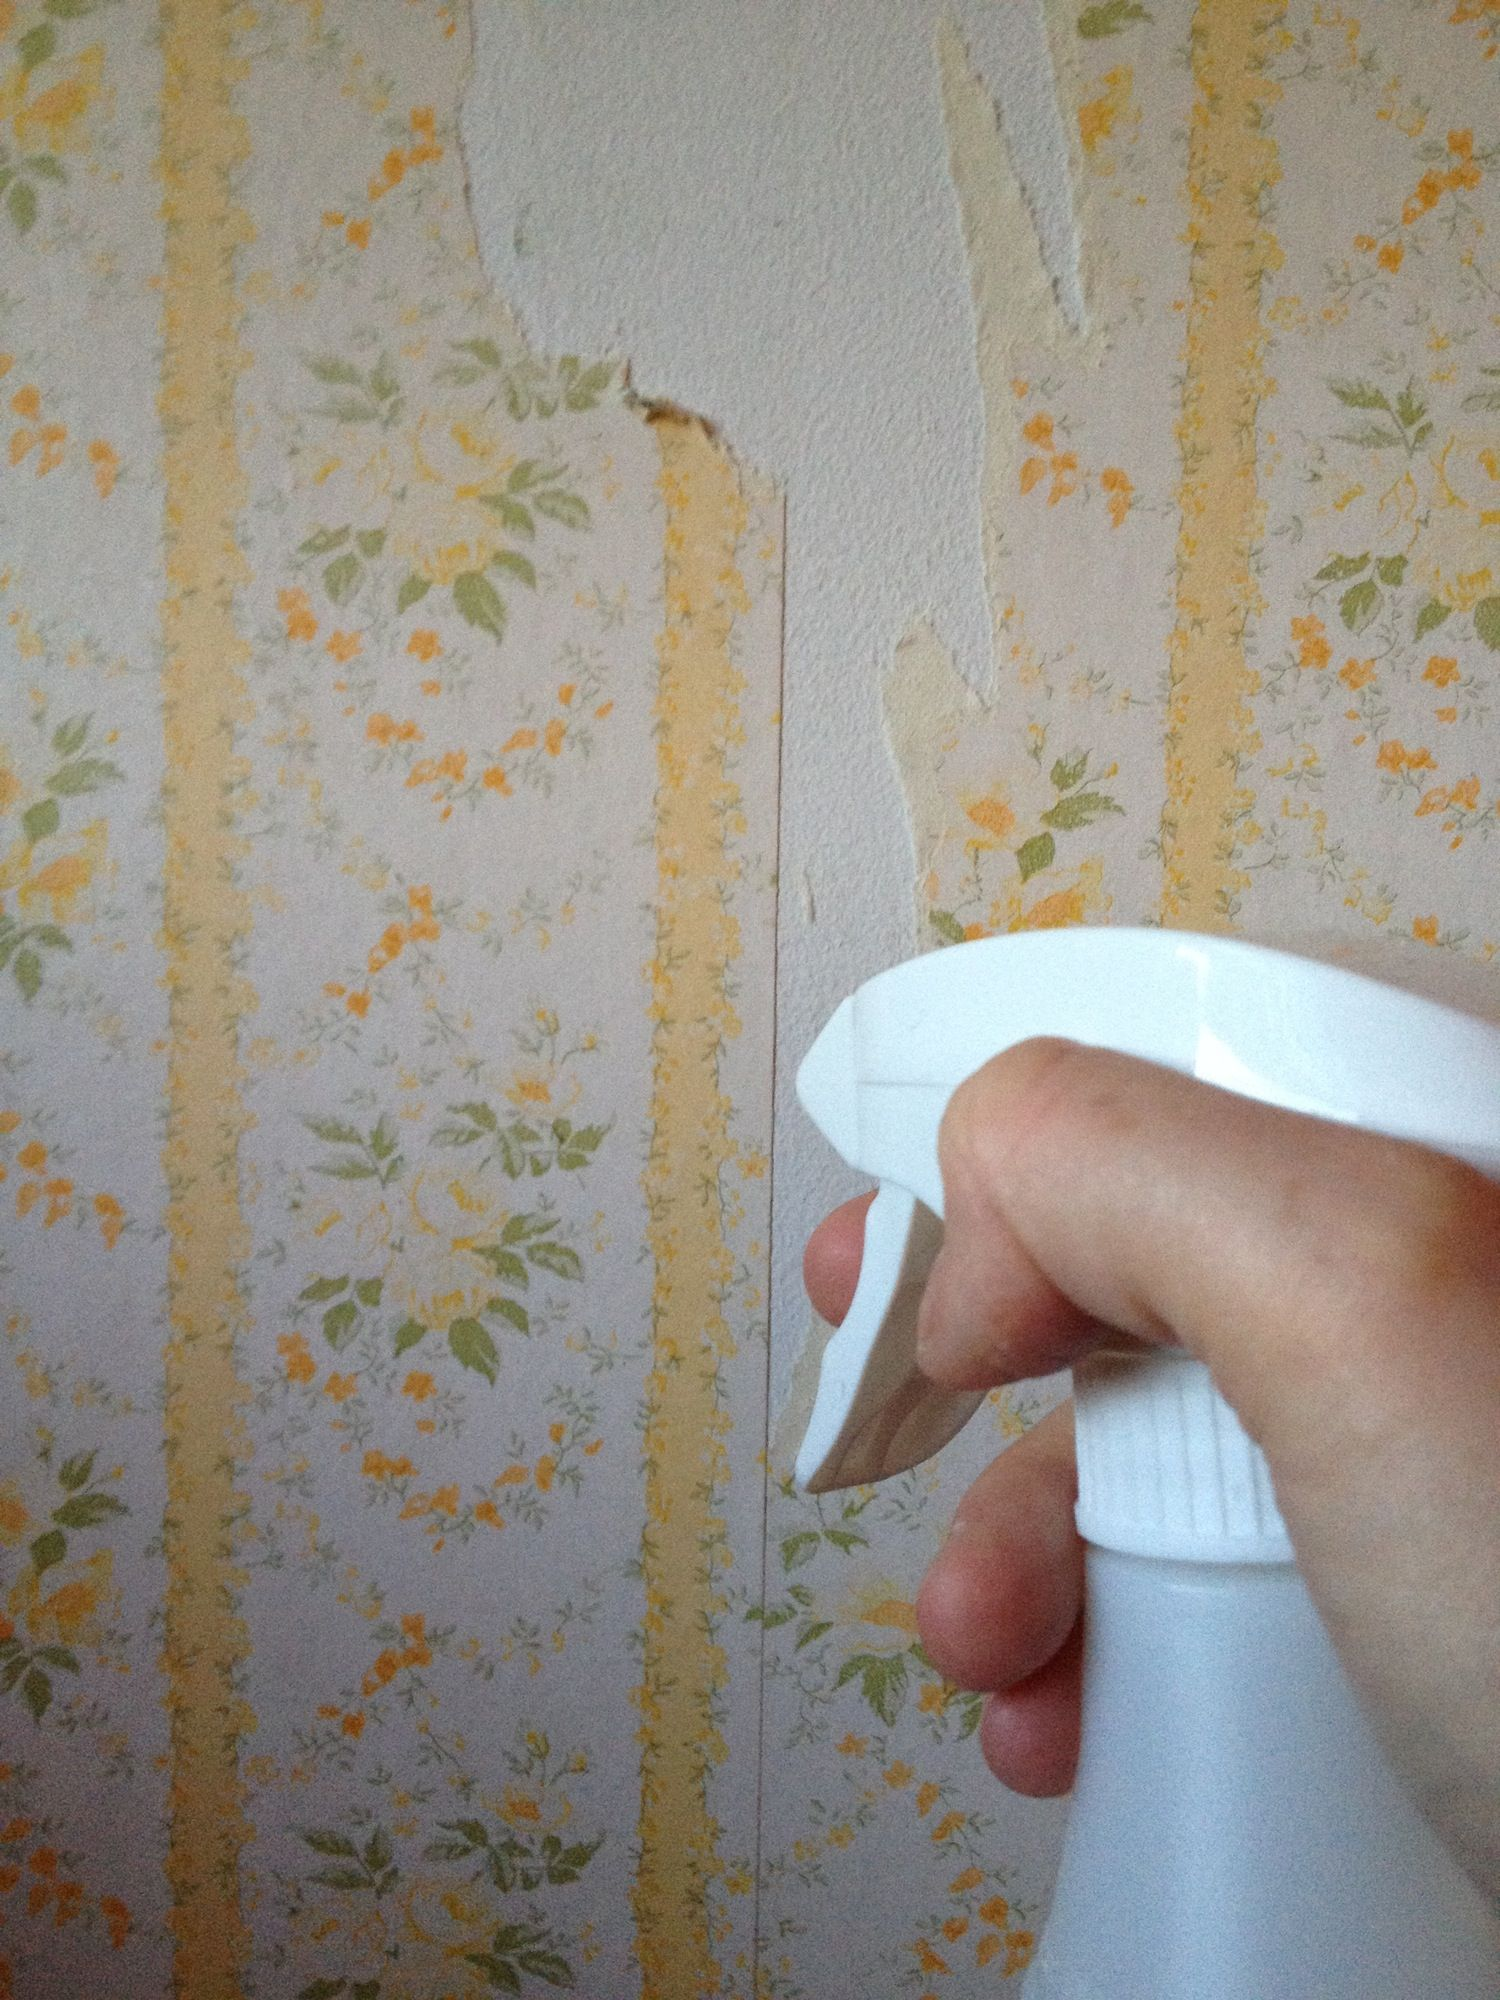 Easy & All Natural Wallpaper Removal Tip Use Vinegar and